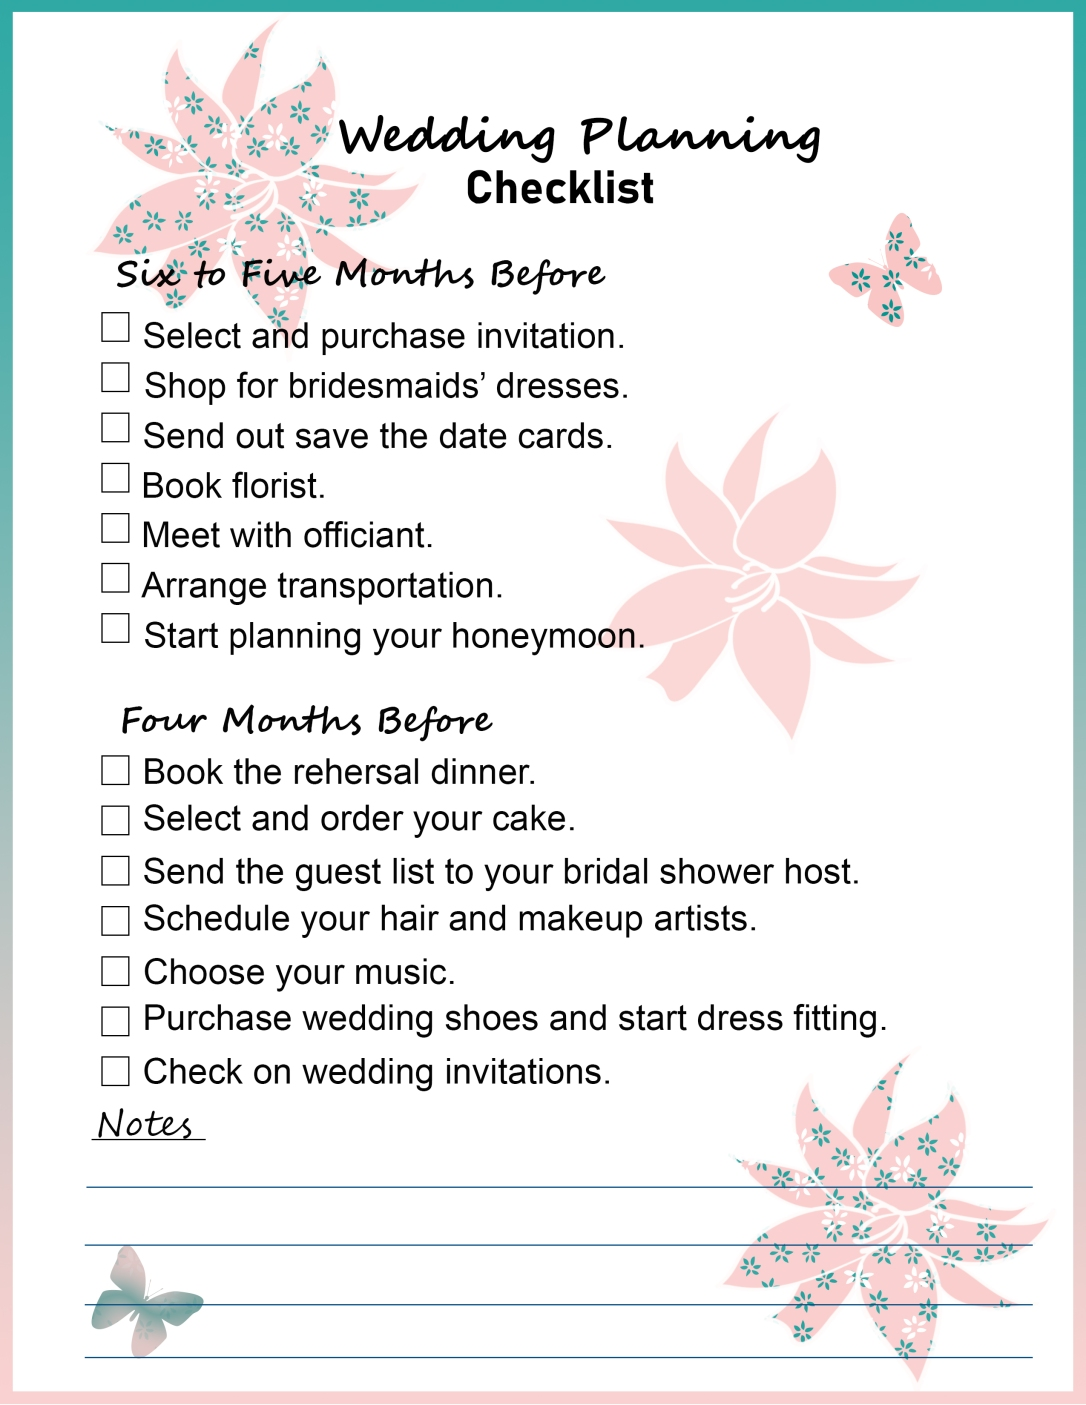 How To Start Planning A Wedding.How To Plan A Wedding Printable Binder Checklists